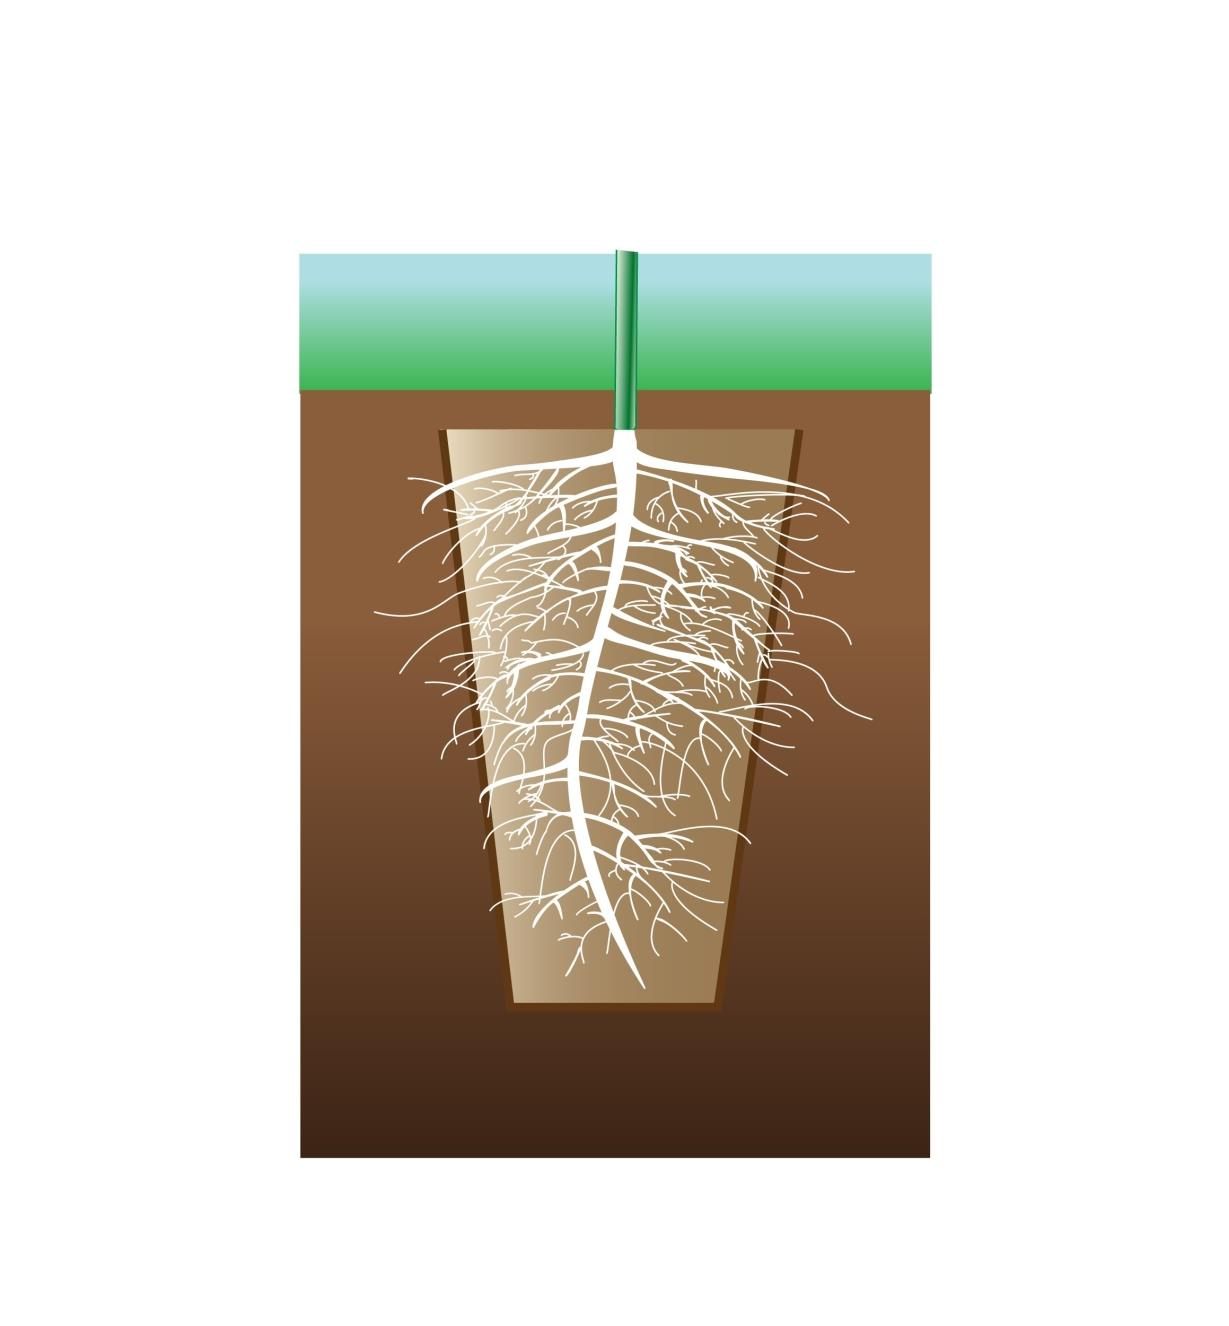 Illustration shows roots penetrating the walls of the pot after planting